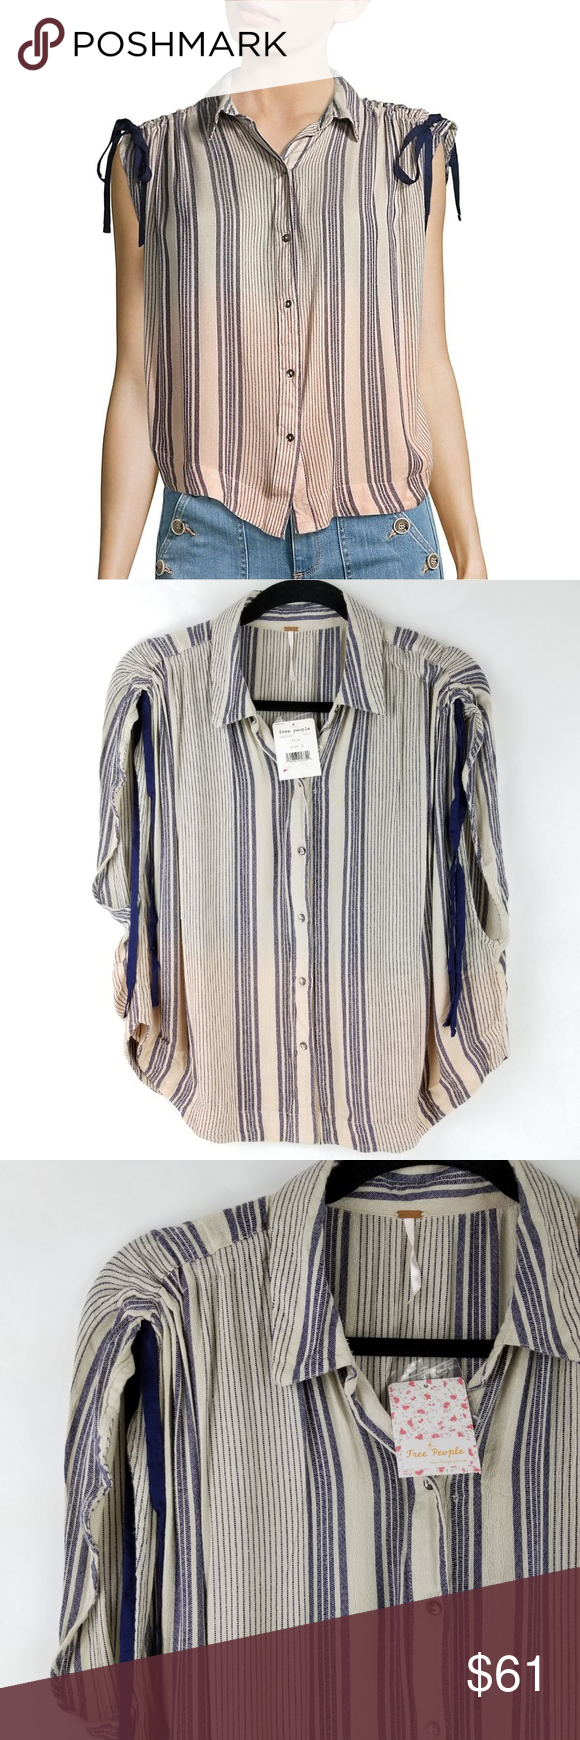 New Free People Women/'s Size Medium Blue Striped Button Down Shirt